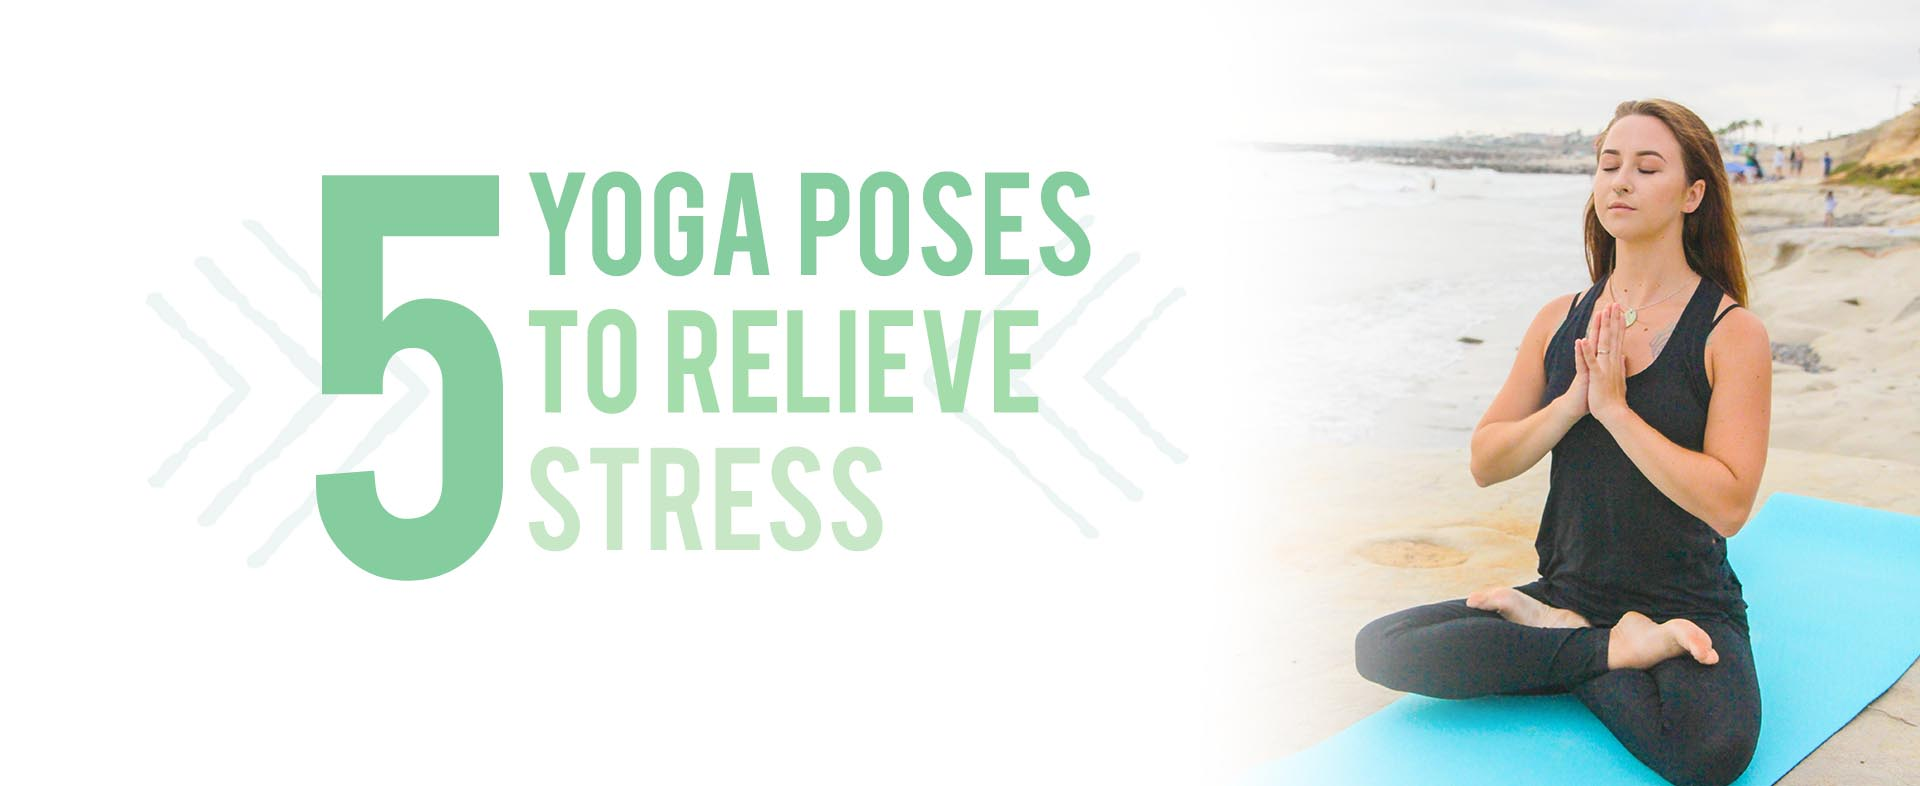 Yoga Poses that Relieve Stress